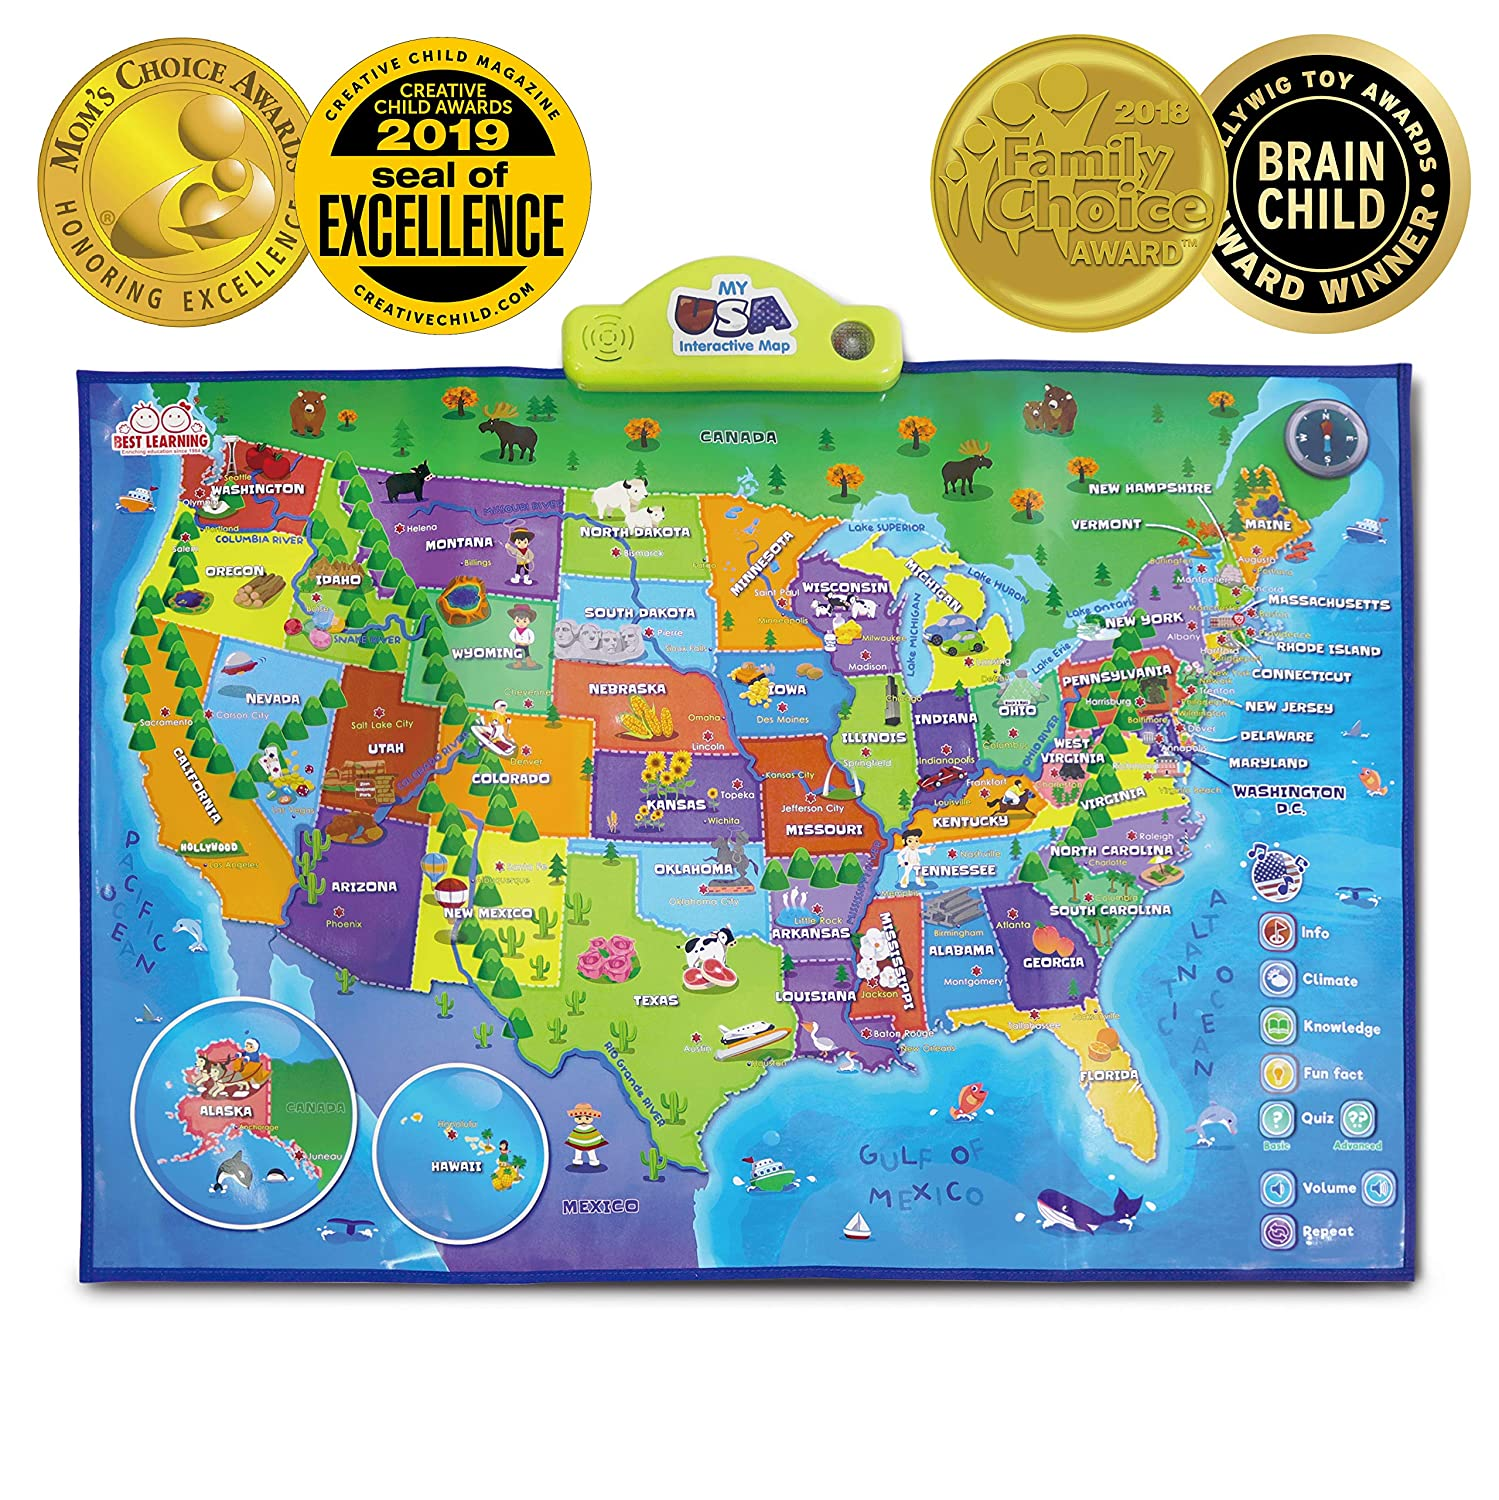 Interactive Map Of The Usa.Best Learning I Poster My Usa Interactive Map Educational Talking Toy For Boys And Girls Ages 5 To 12 Years Old Ideal Gift For Kids